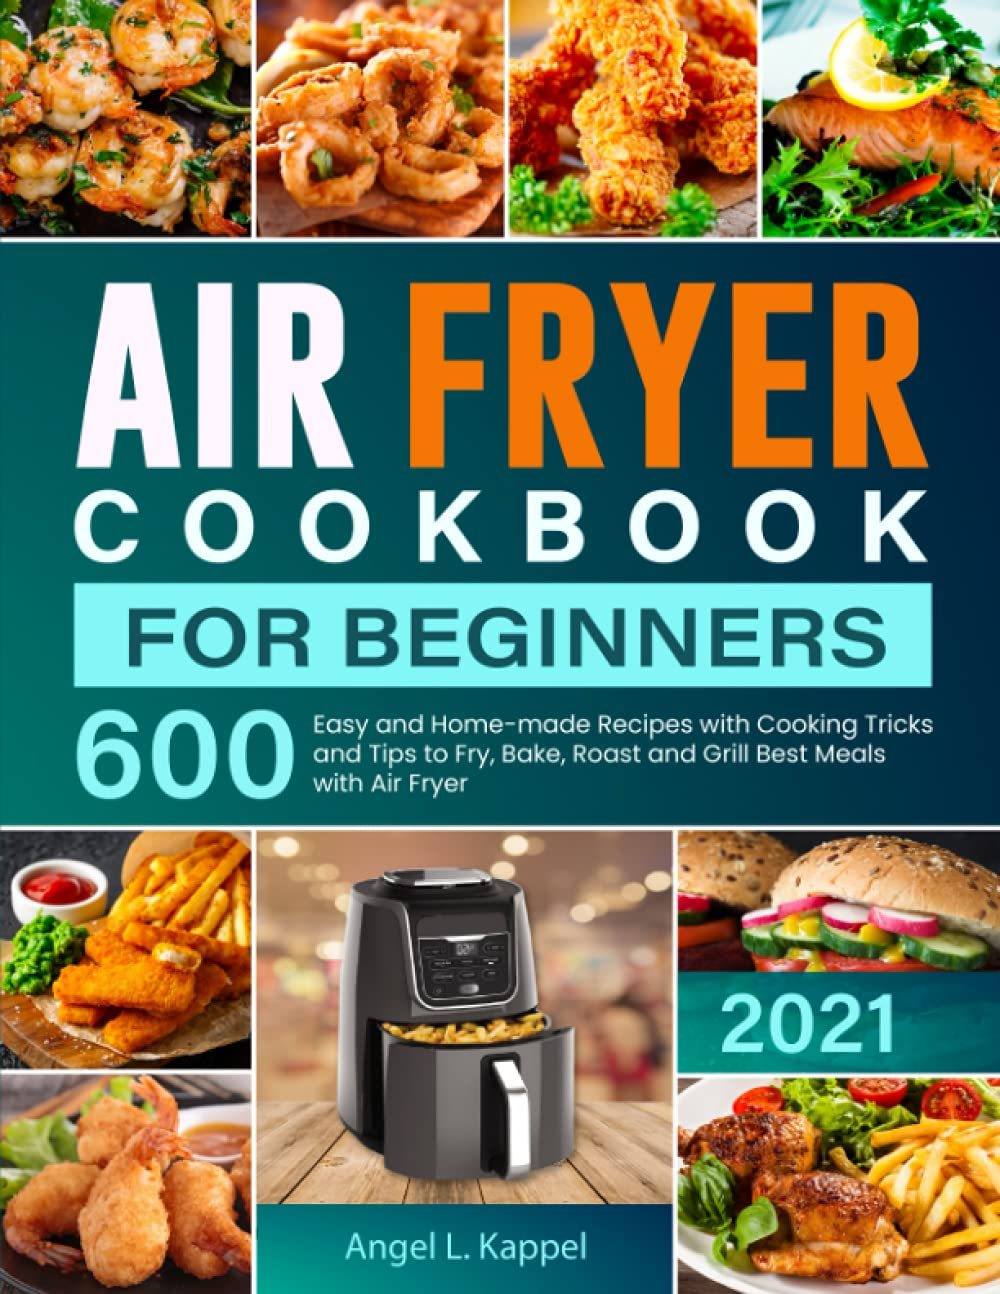 Air Fryer Cookbook For Beginners: 600 Easy and Home-made Recipes with Cooking Tricks and Tips to Fry, Bake, Roast and Grill Best Meals with Air Fryer